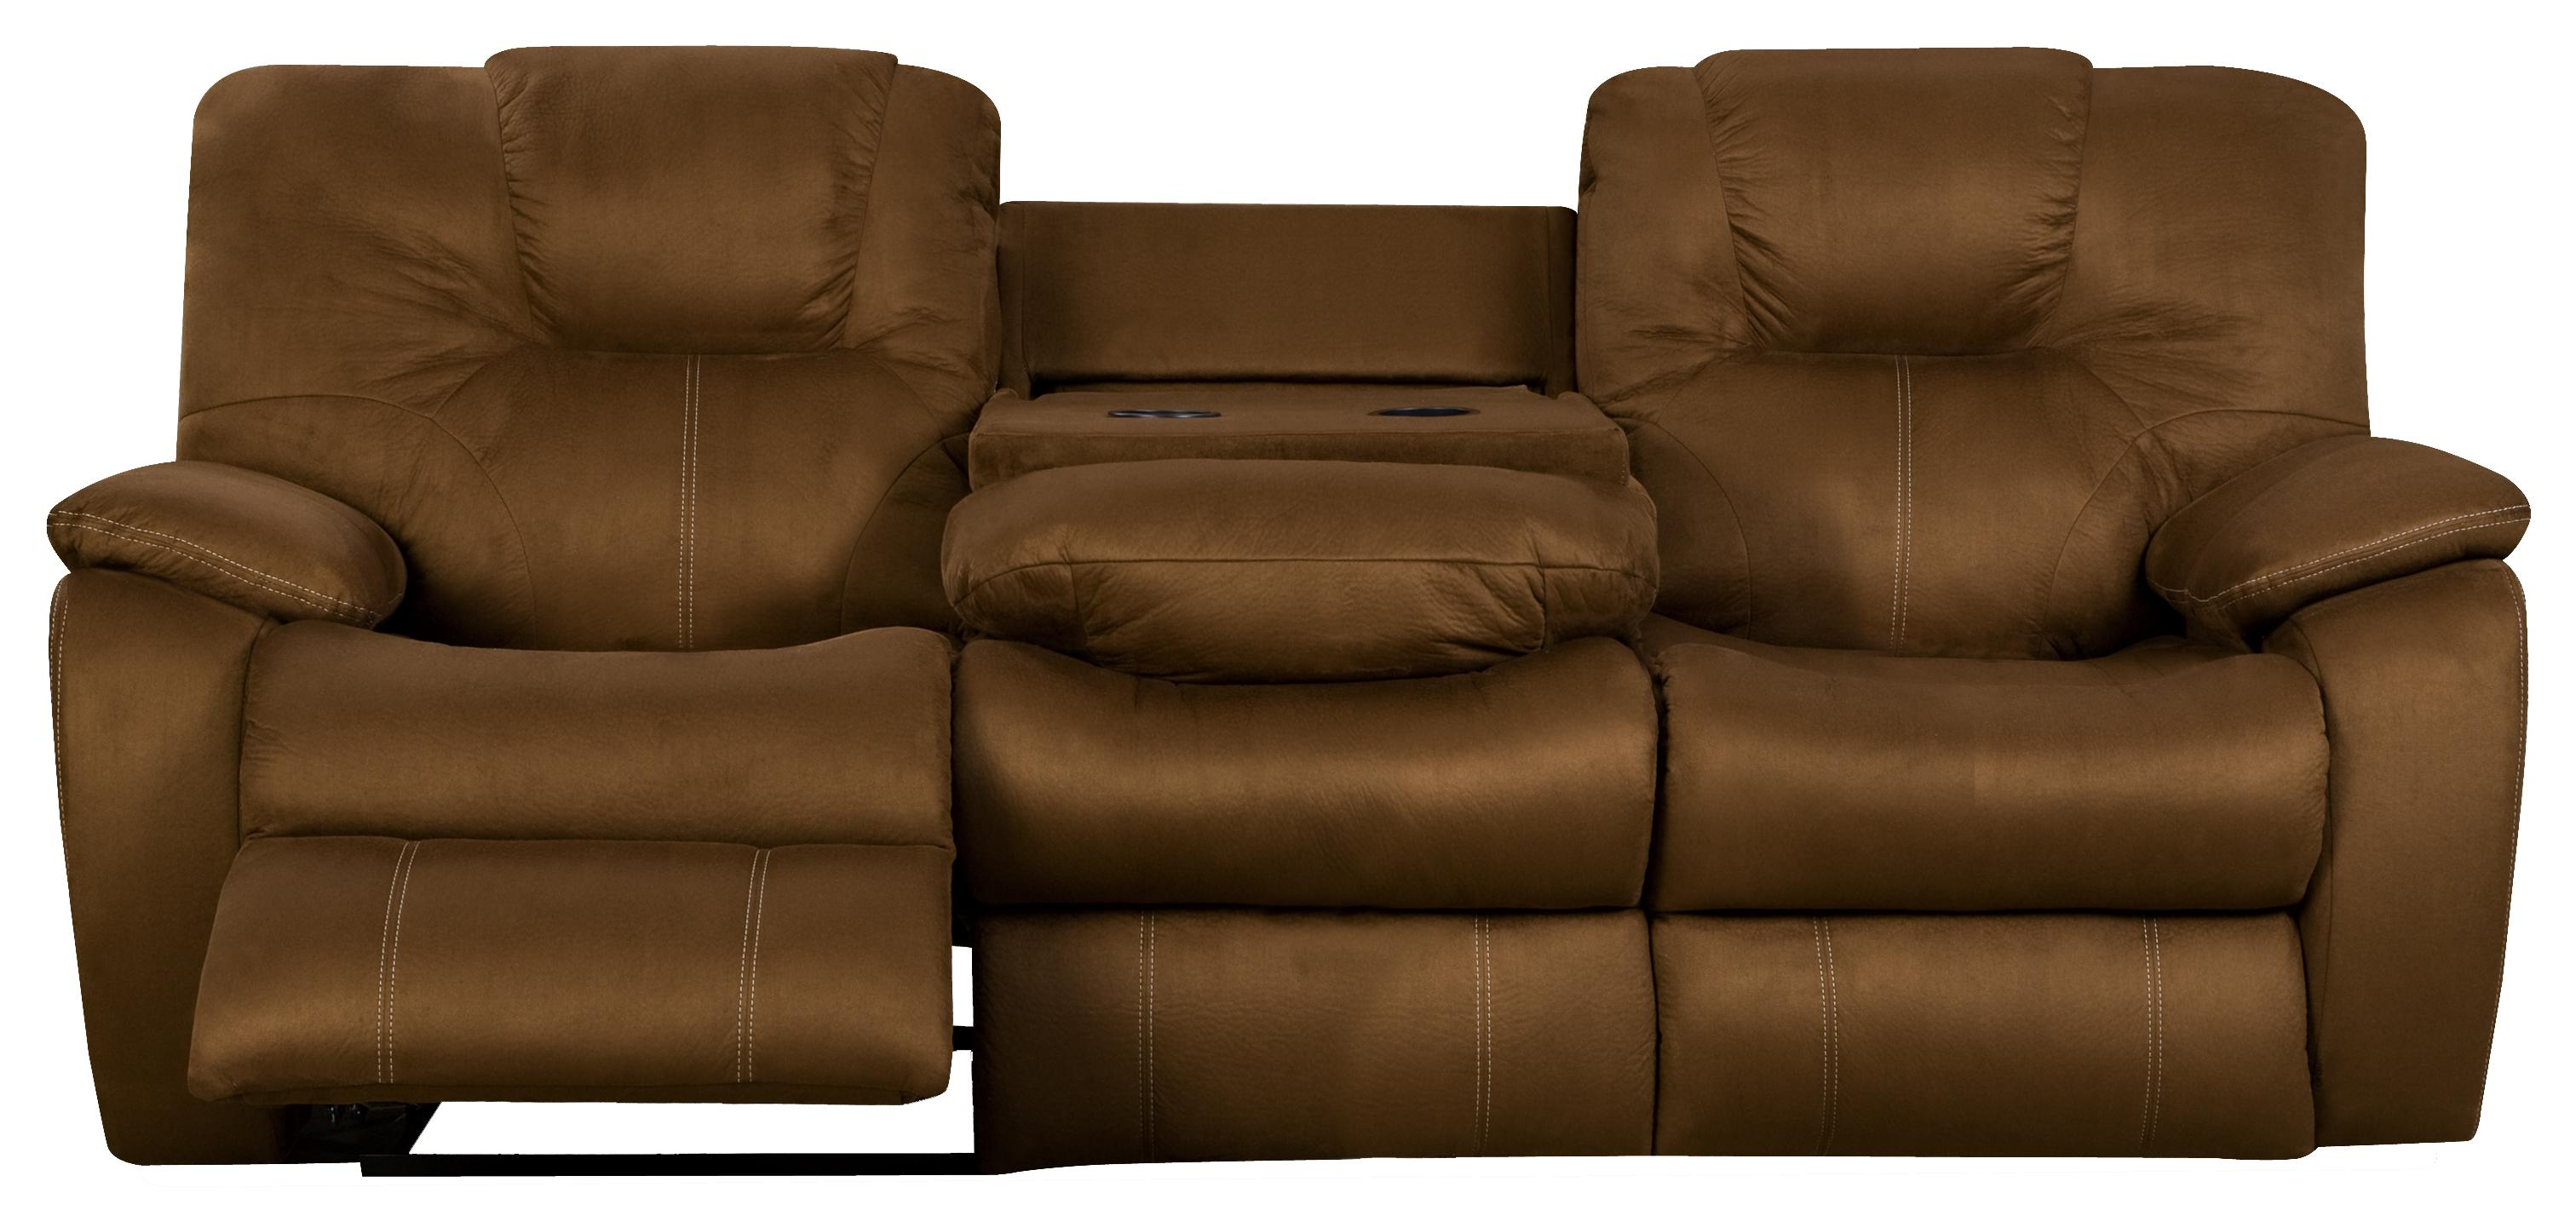 Avalon Reclining Sofa with Drop Down Table by Southern Motion at Lapeer Furniture & Mattress Center